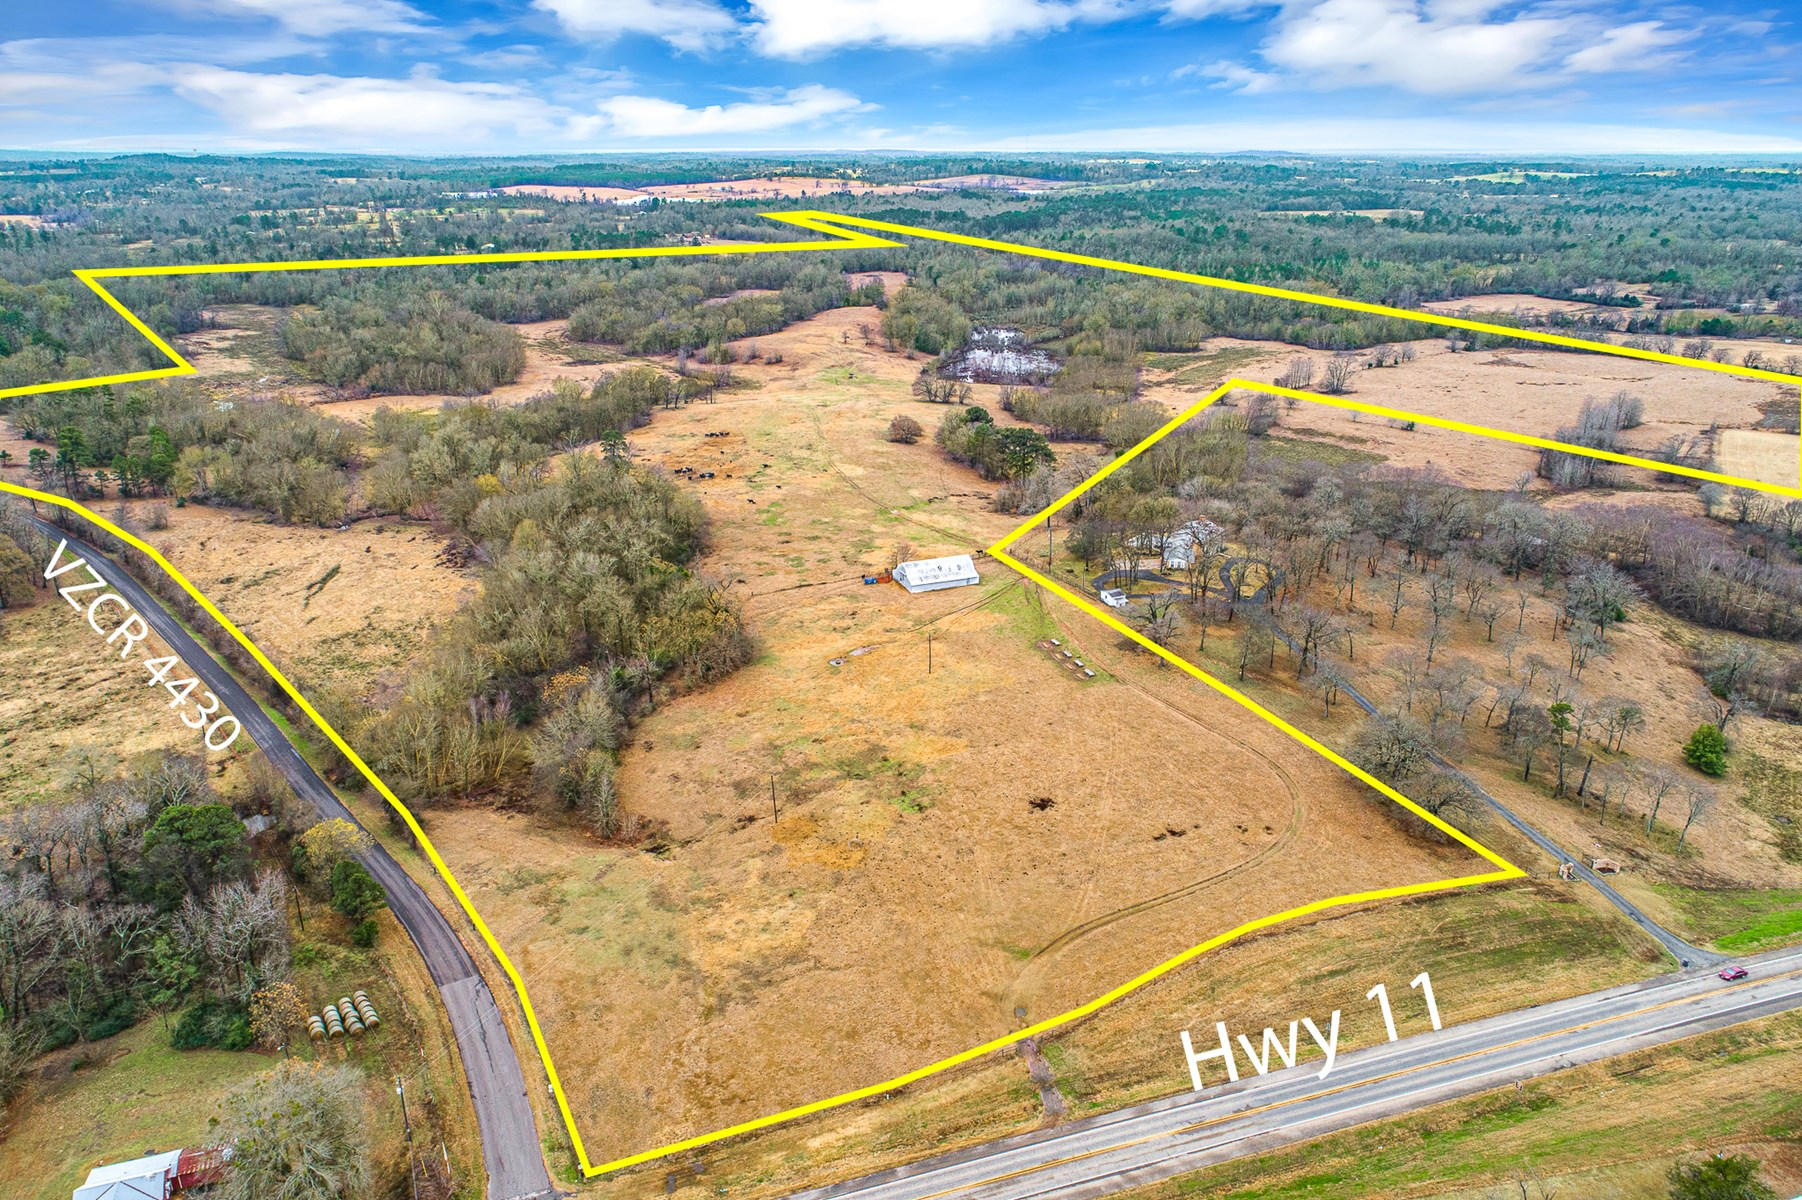 OVER 177 ACRES OF LAND IN EAST TEXAS FOR SALE - EAST OF DFW